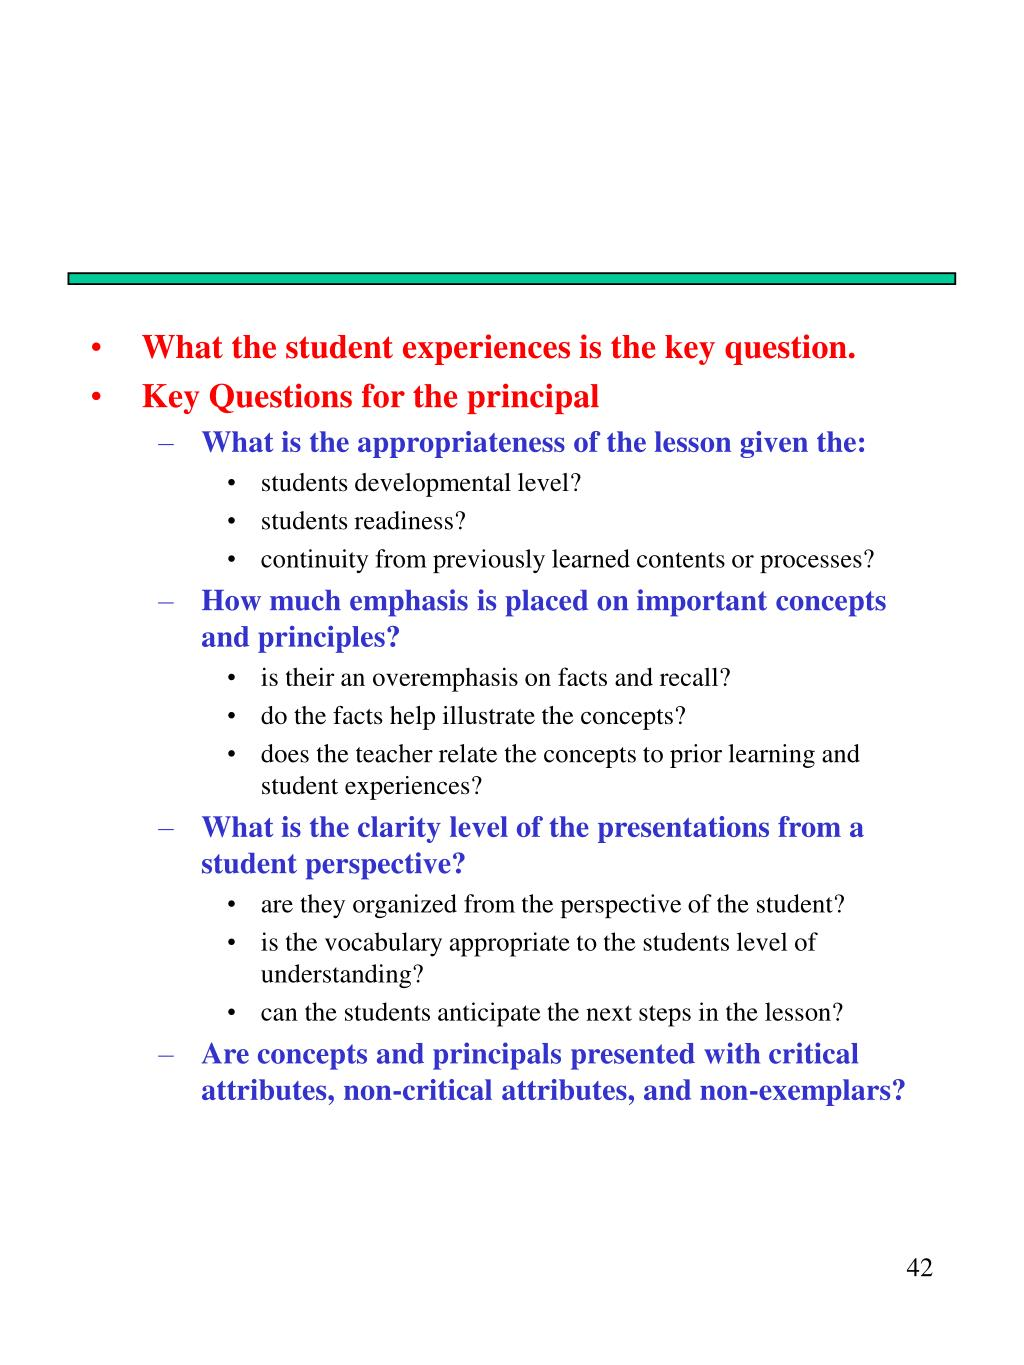 What the student experiences is the key question.